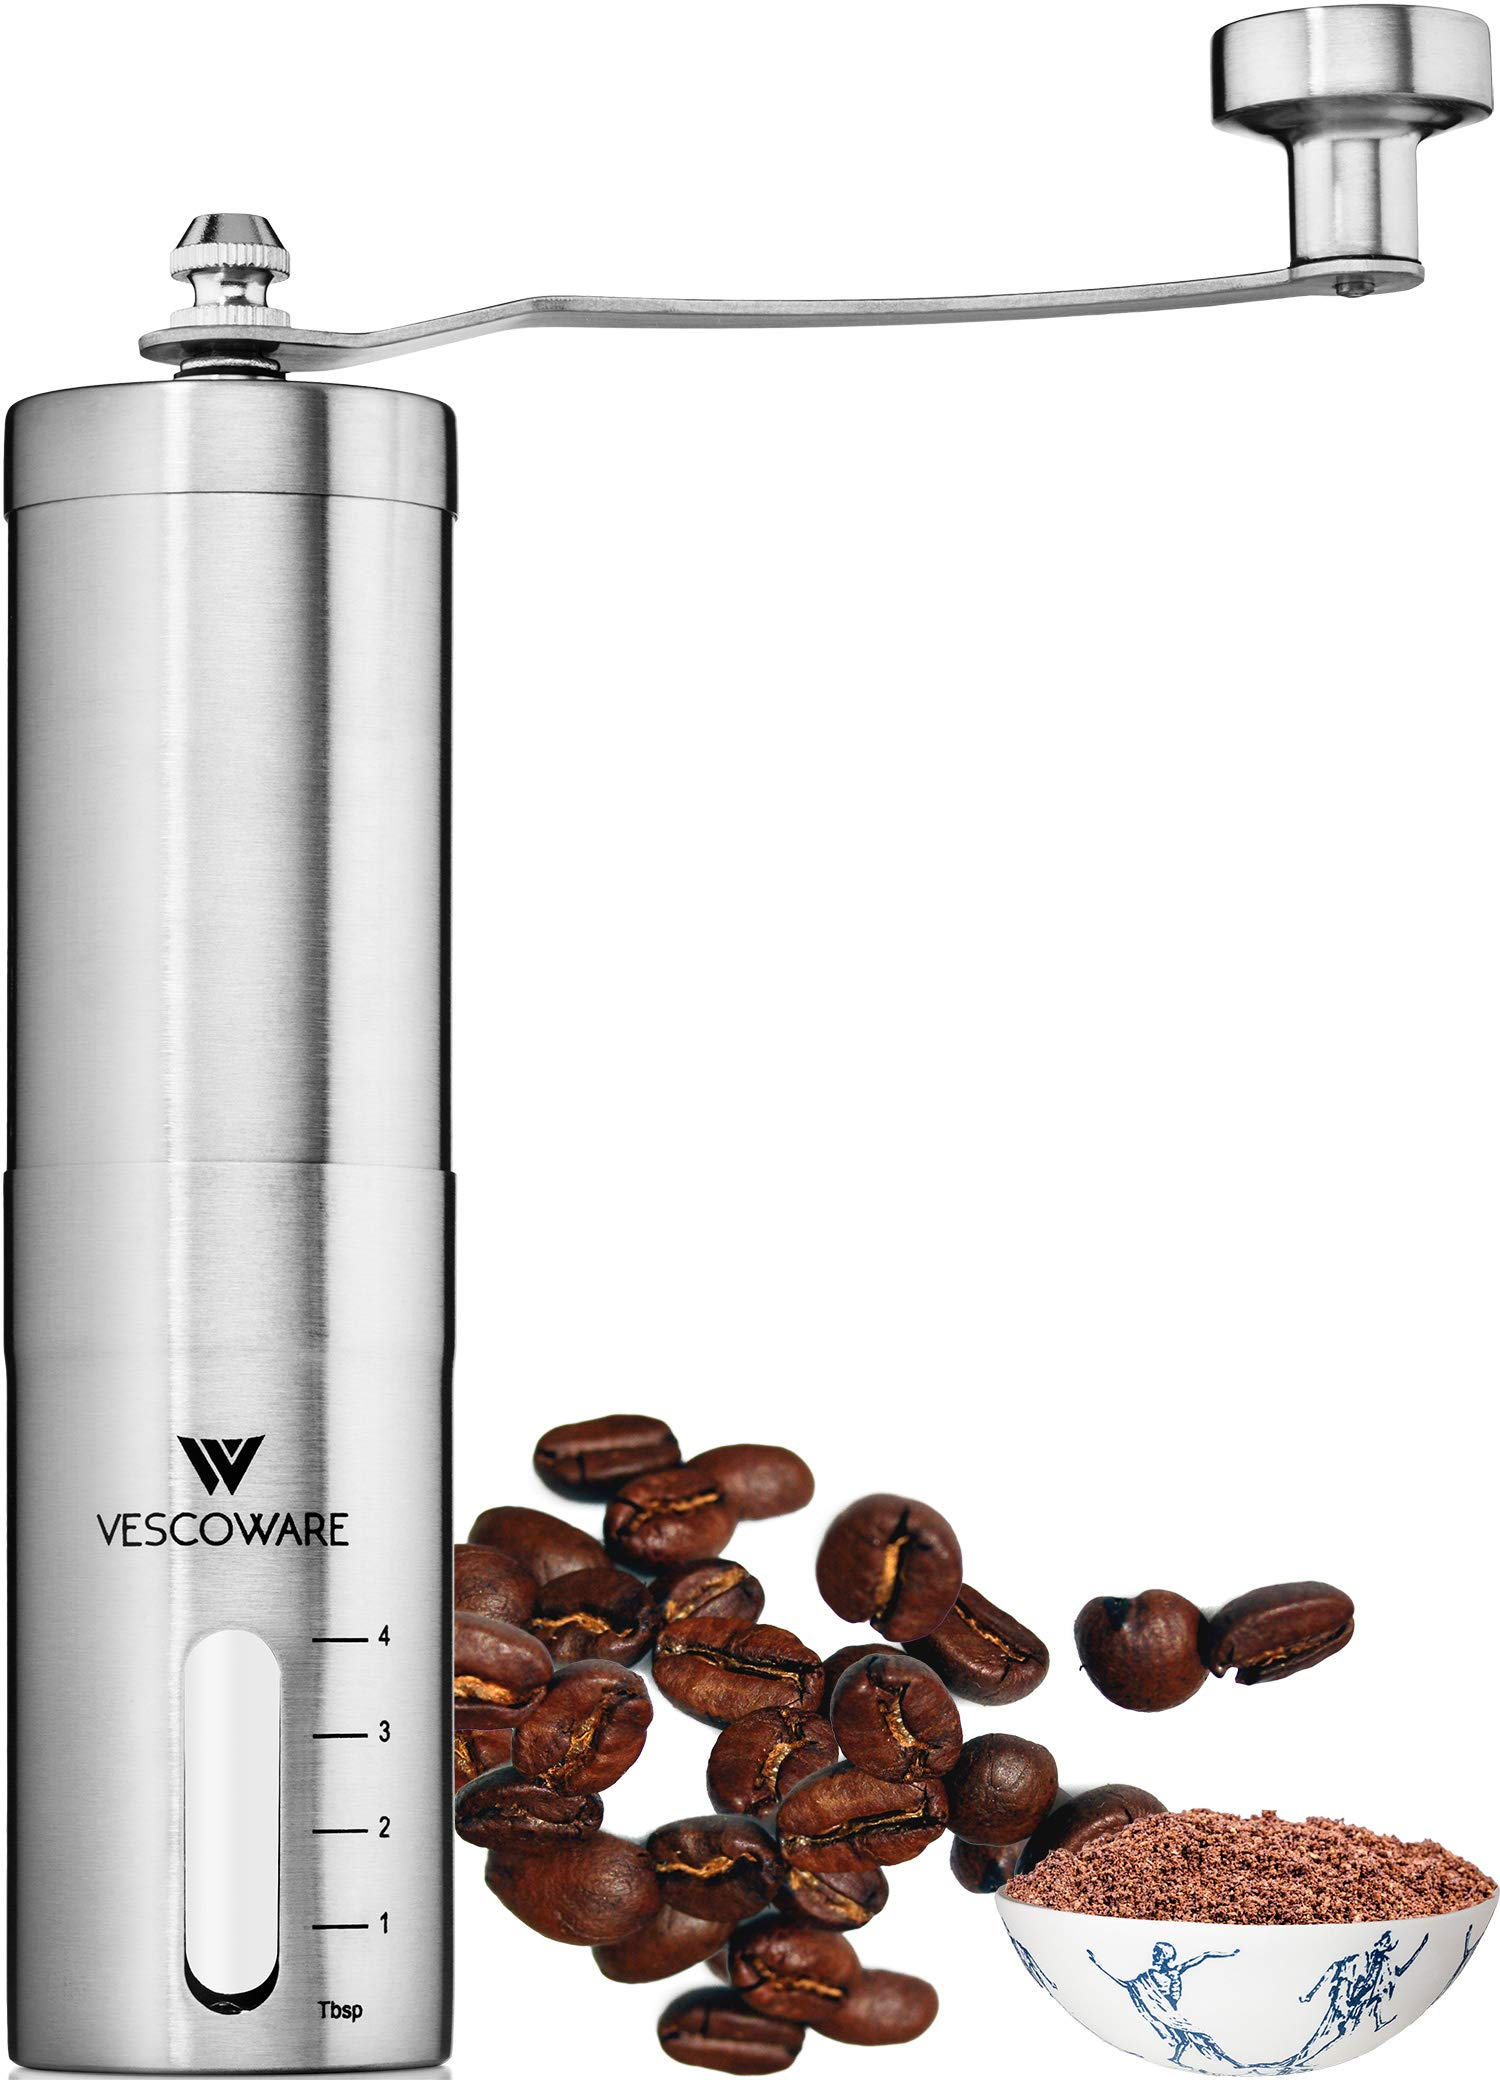 Manual Coffee Grinder with Conical Burr - Hand Bean Mill with Adjustable Settings for Espresso, French Press, Cold & Turkish Brew - Stainless Steel